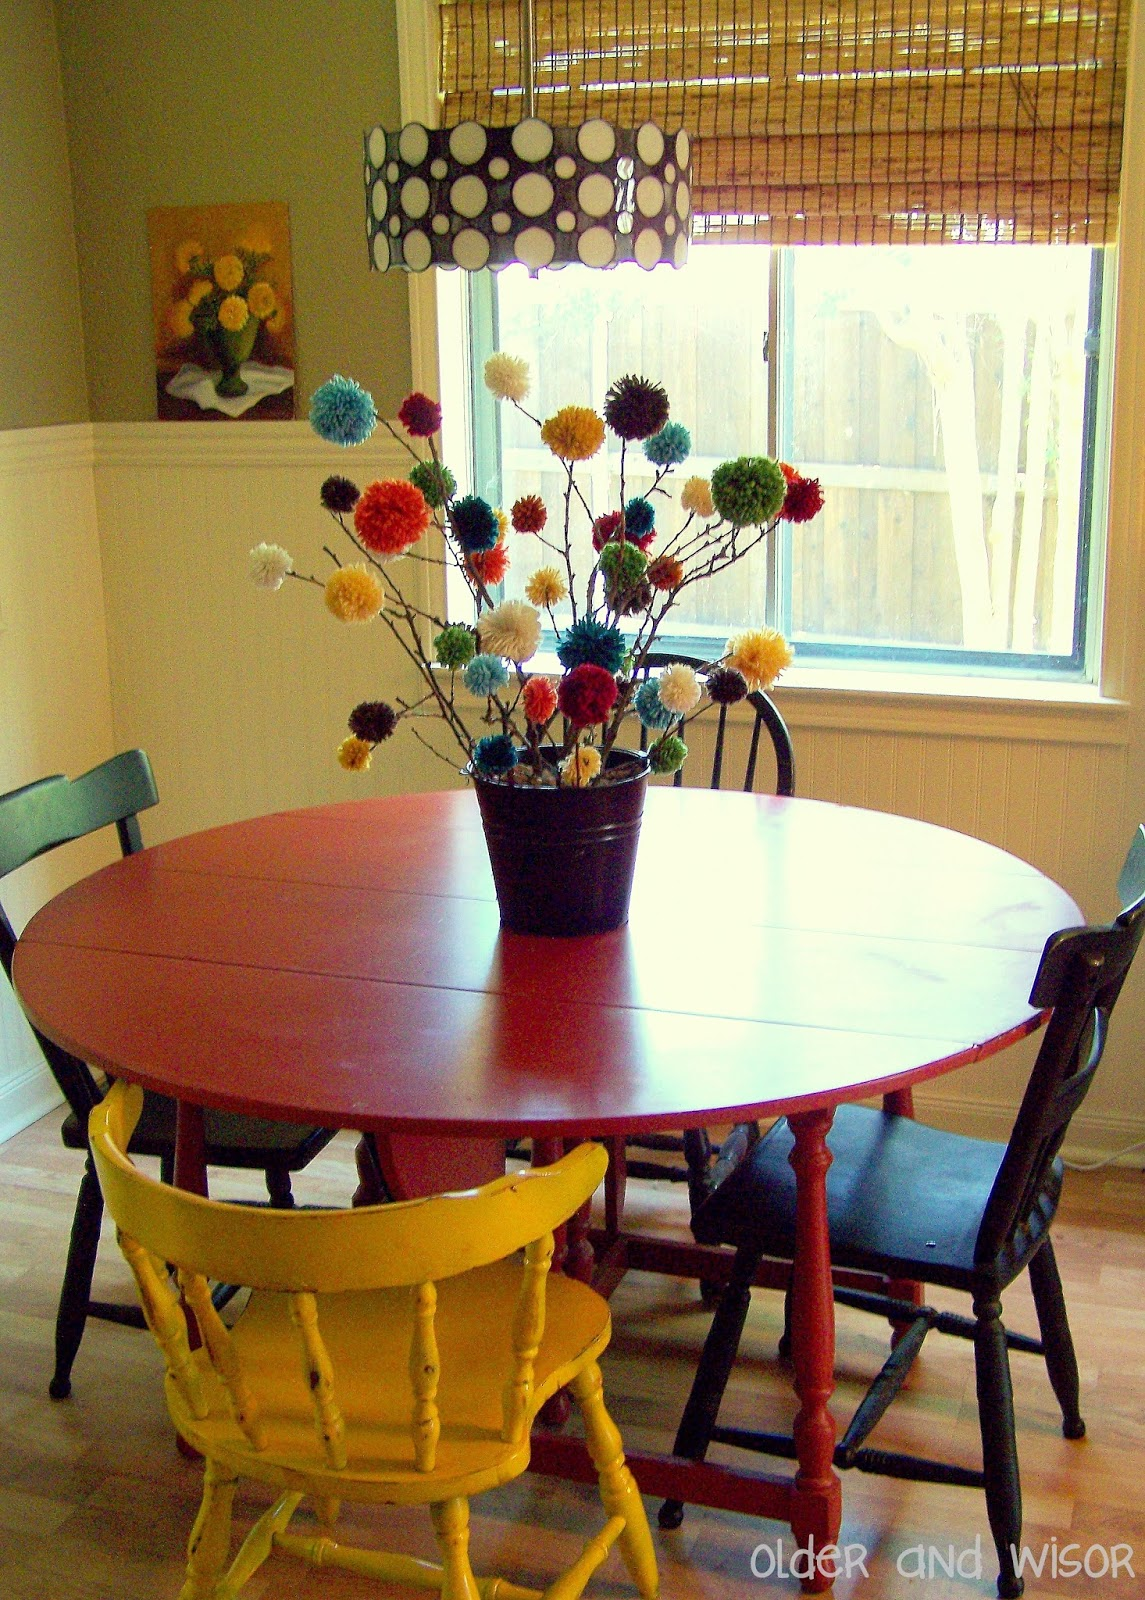 Older and wisor pom trees a free centerpiece idea for Small kitchen table centerpiece ideas